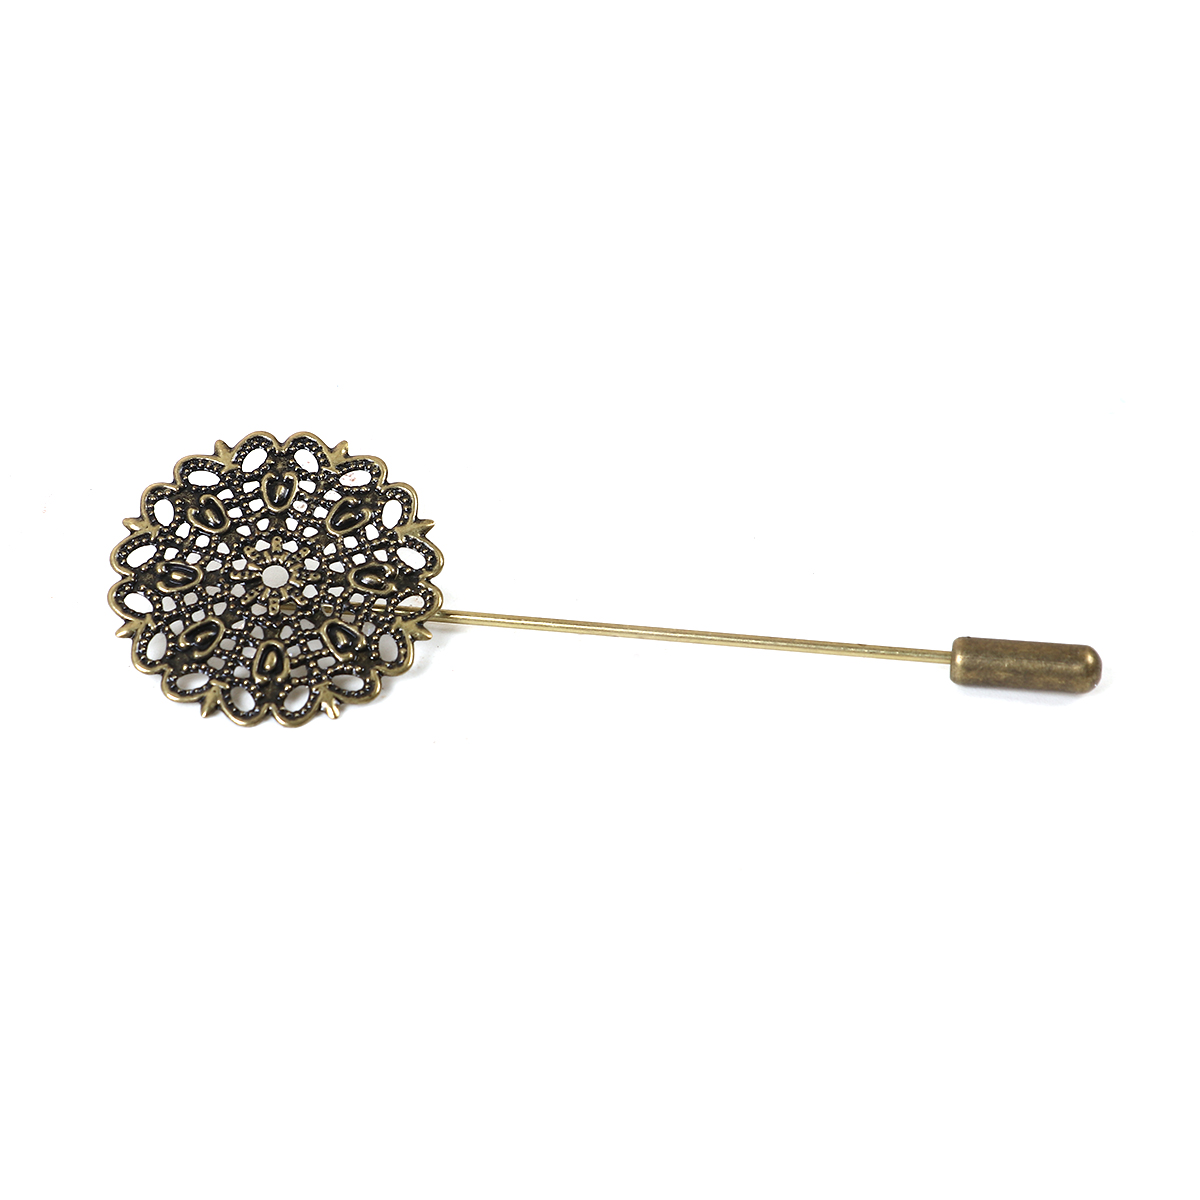 NBEADS 500 Pcs Nickle Free Brooch Backs Bar Pins Findings Safety Rolling Catch 25x5mm,Antique Bronze,Hole 2mm